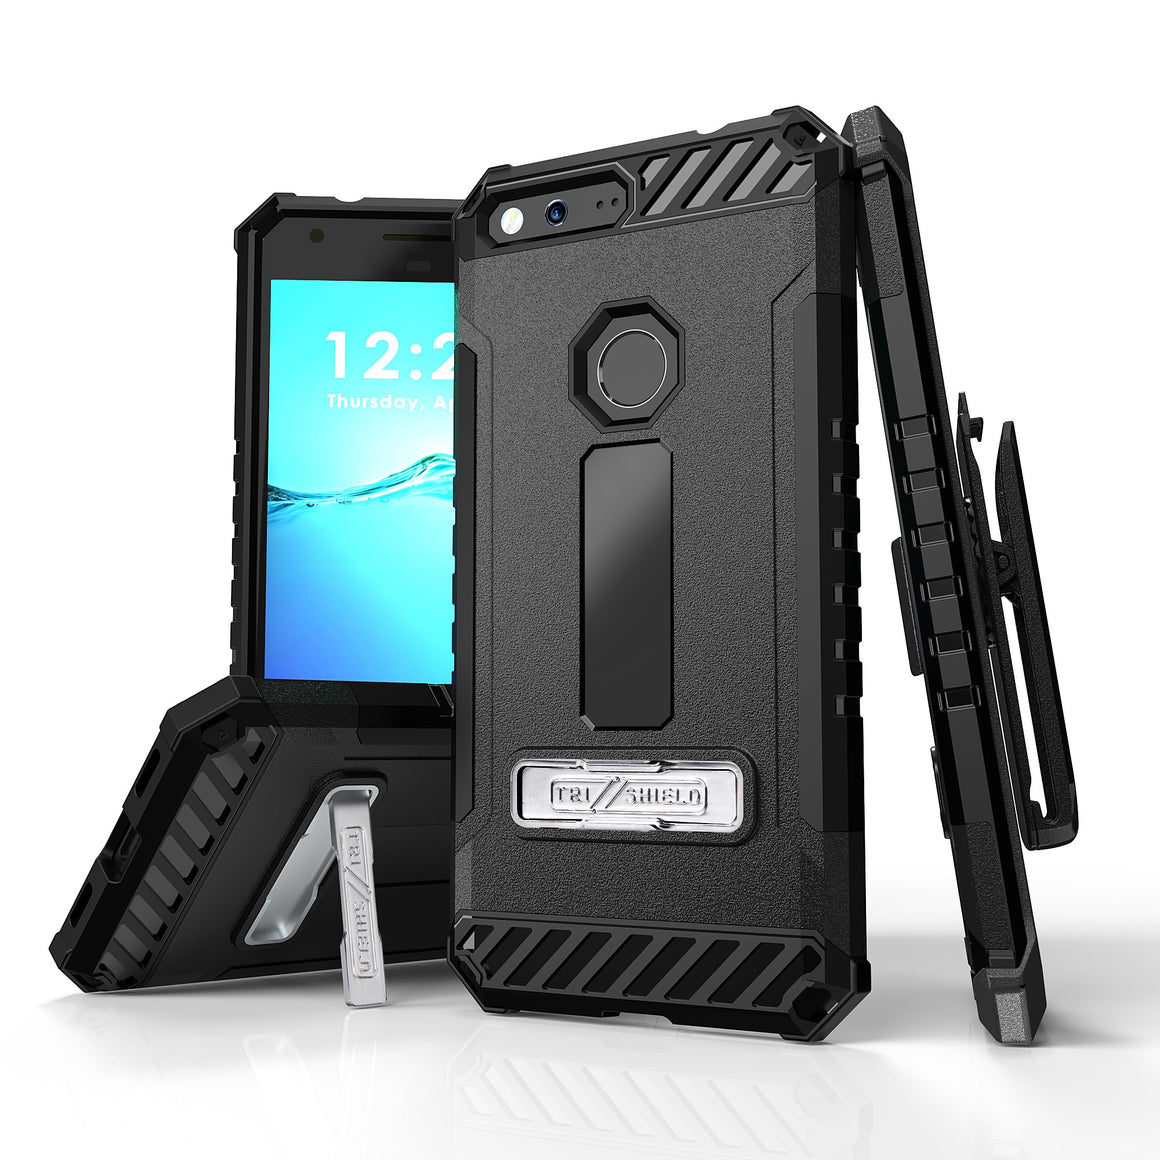 Tri Shield For Google Pixel XL 5.5 (Verizon) Black/Black, TPU Case,Kickstand, with Belt Clip Holster,